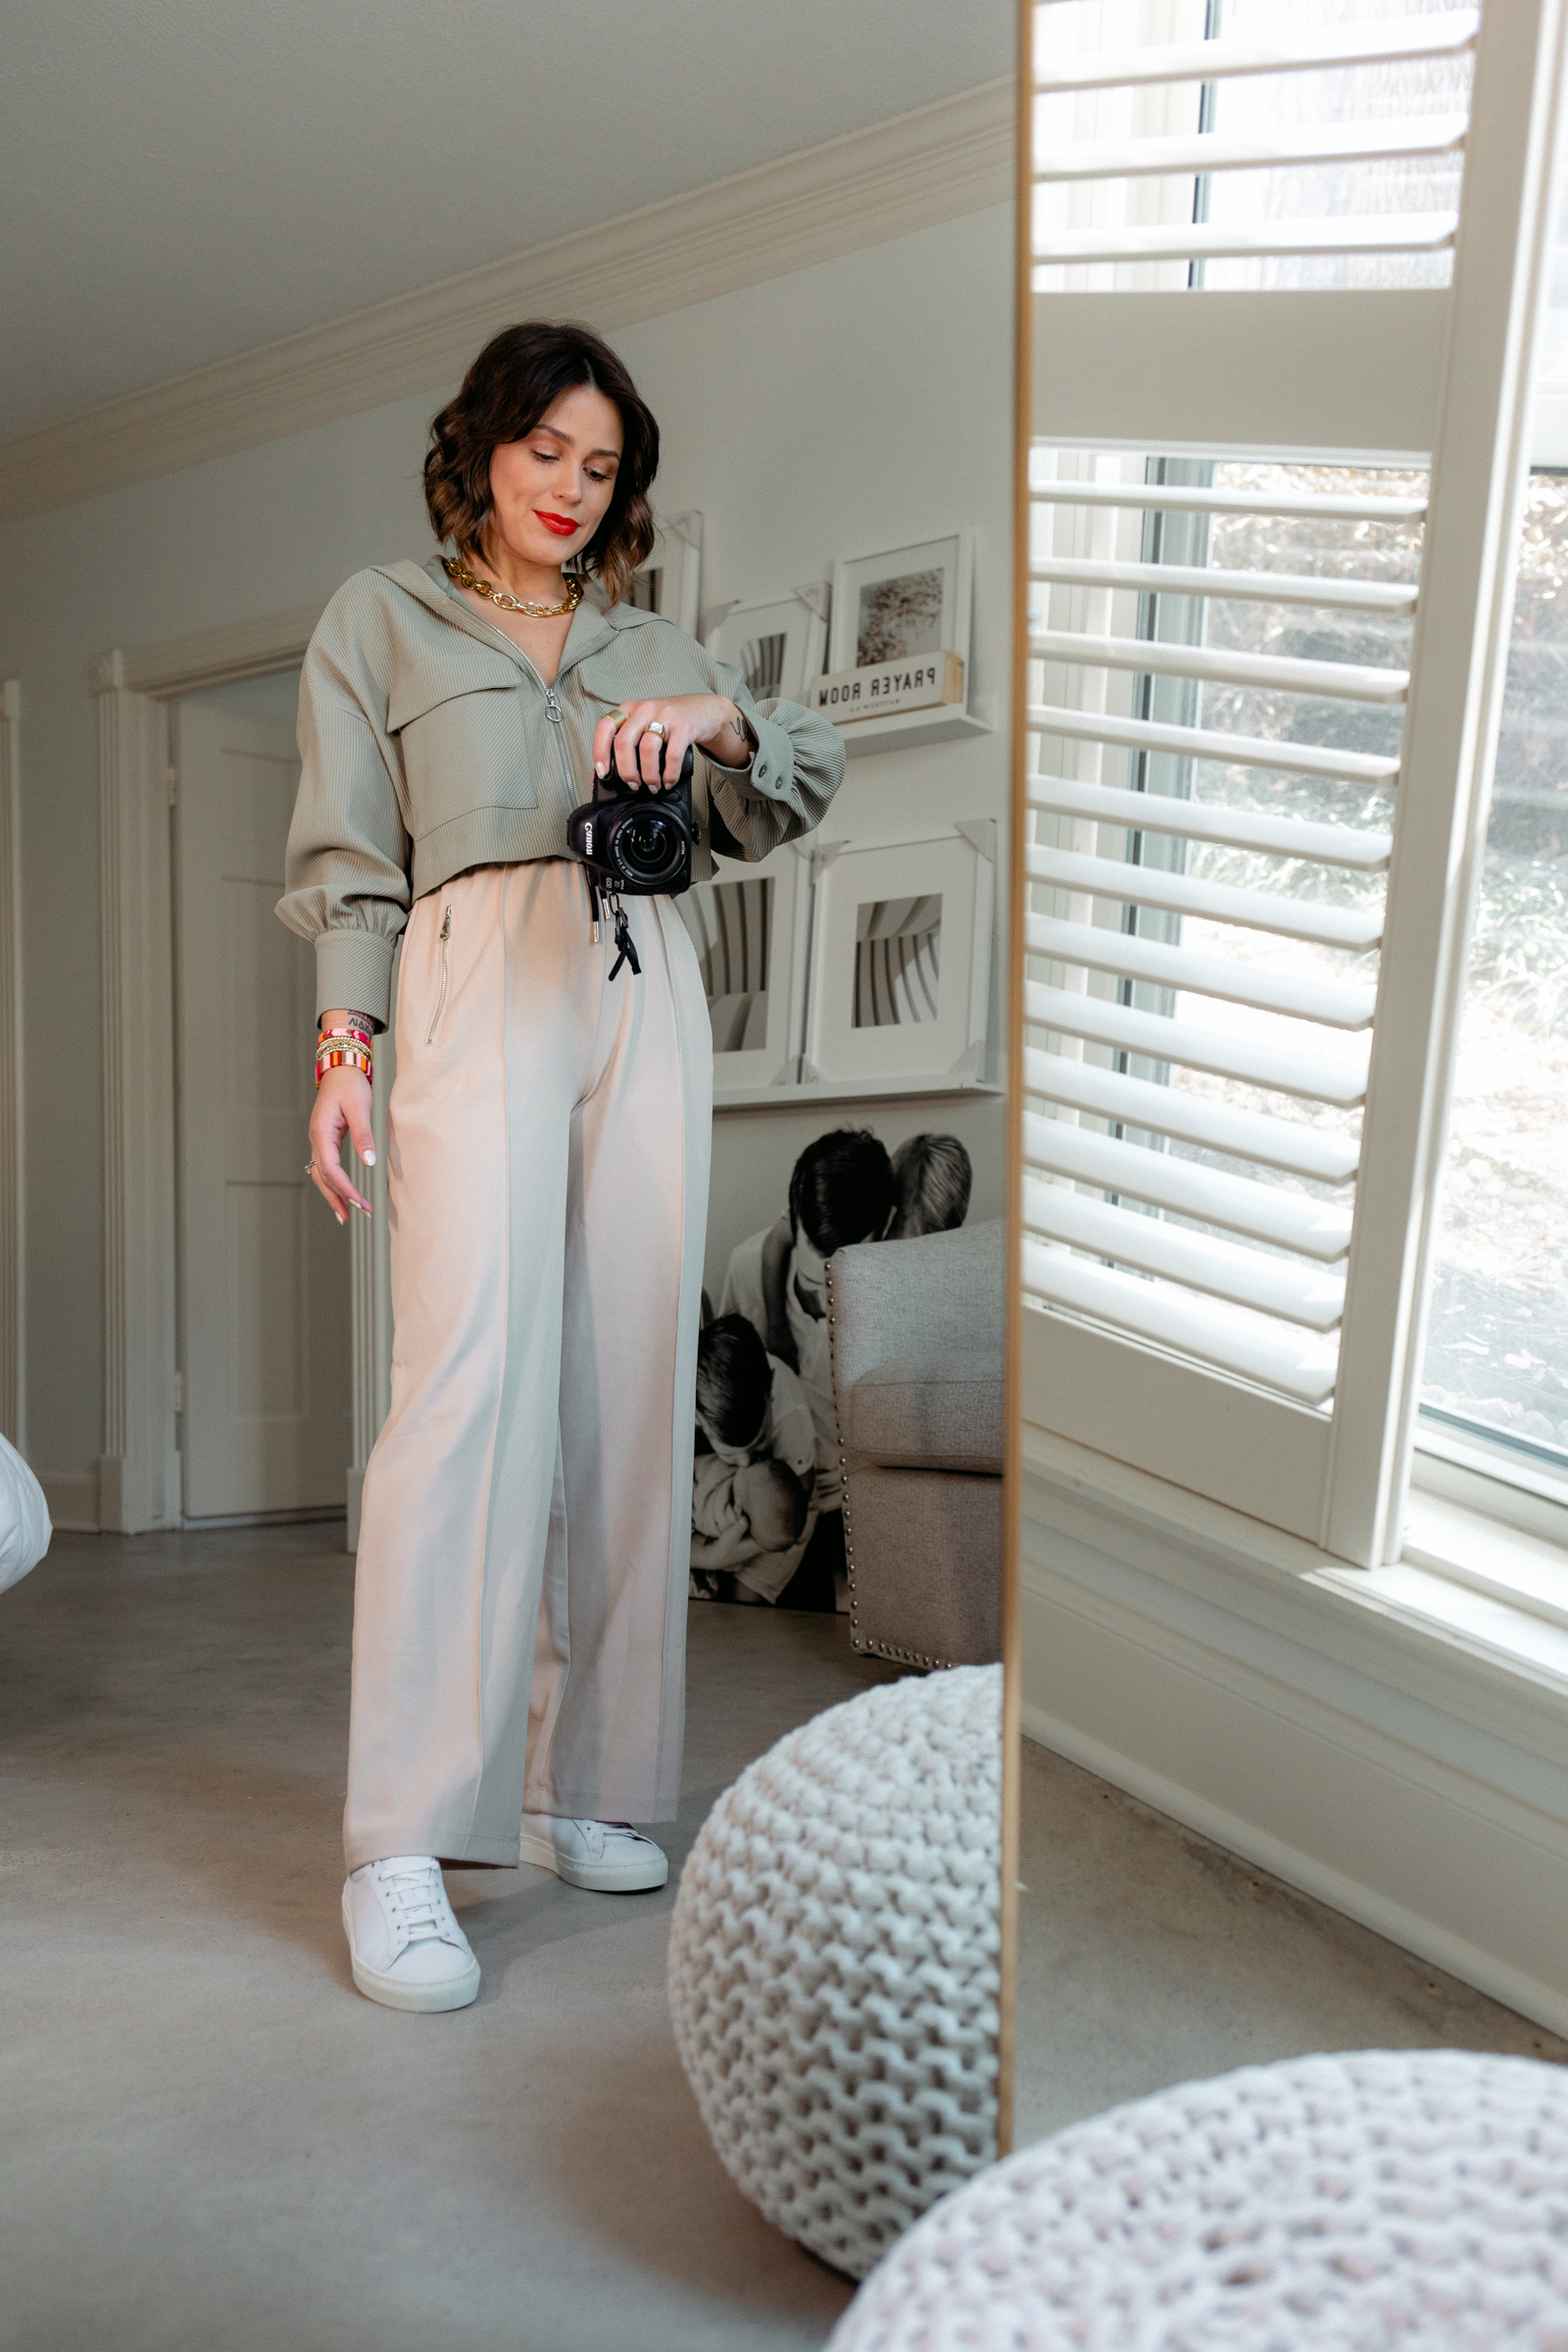 Elly brown wears a safari inspired outfit trousers with a crop jacket and white sneakers